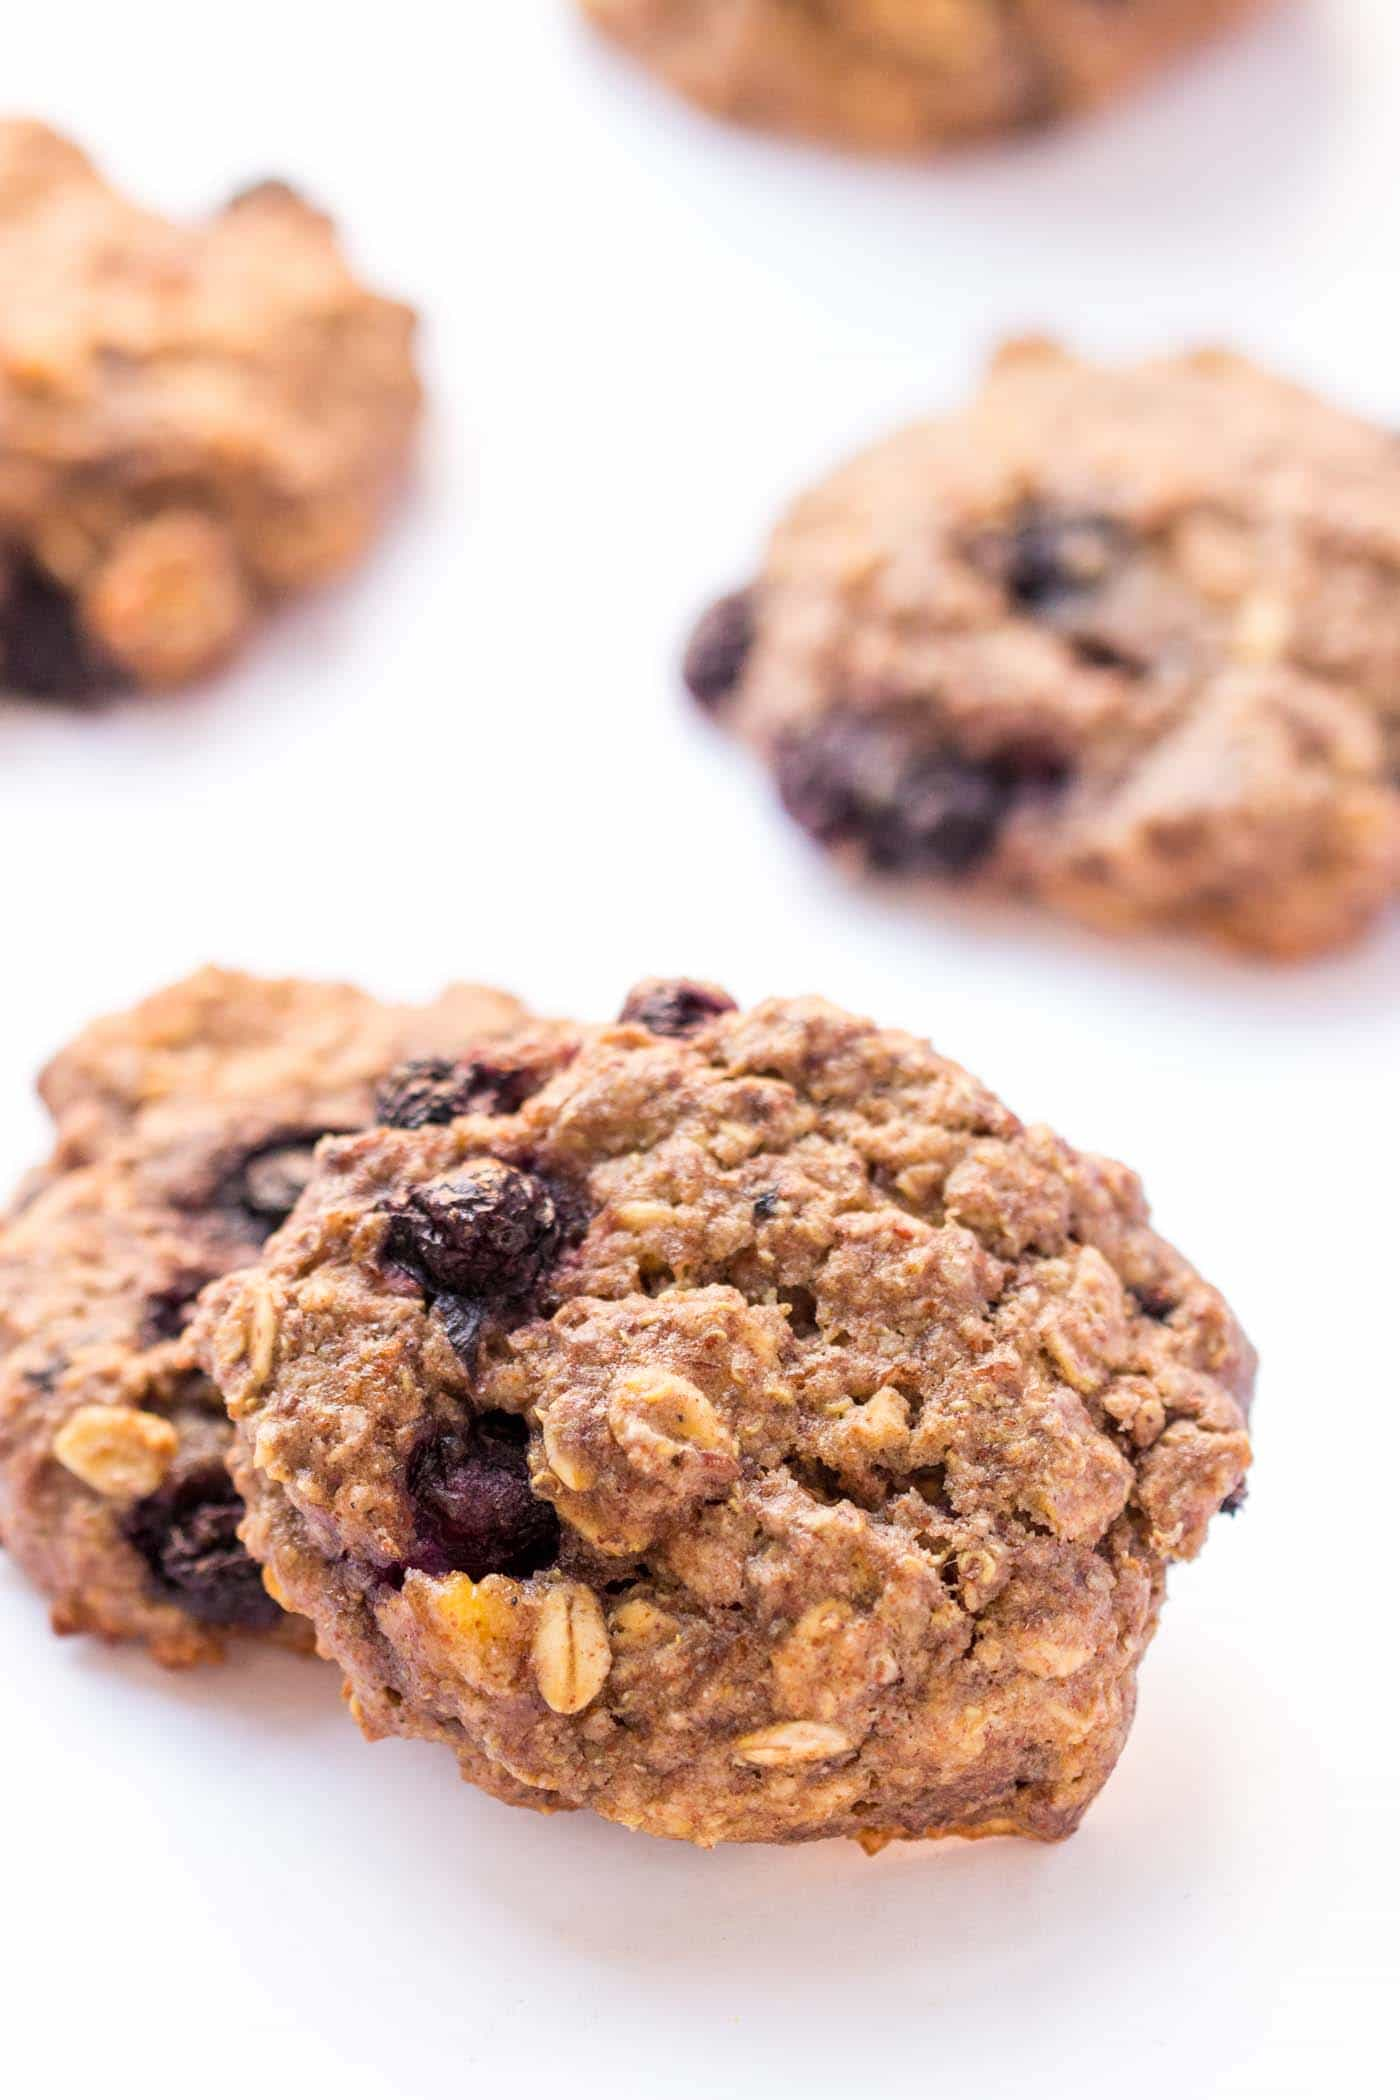 QUINOA BREAKFAST COOKIES!! These taste like a cross between blueberry muffin tops and oatmeal pancakes, but are in the form of a portable, nutritious cookie! [gluten-free + vegan]